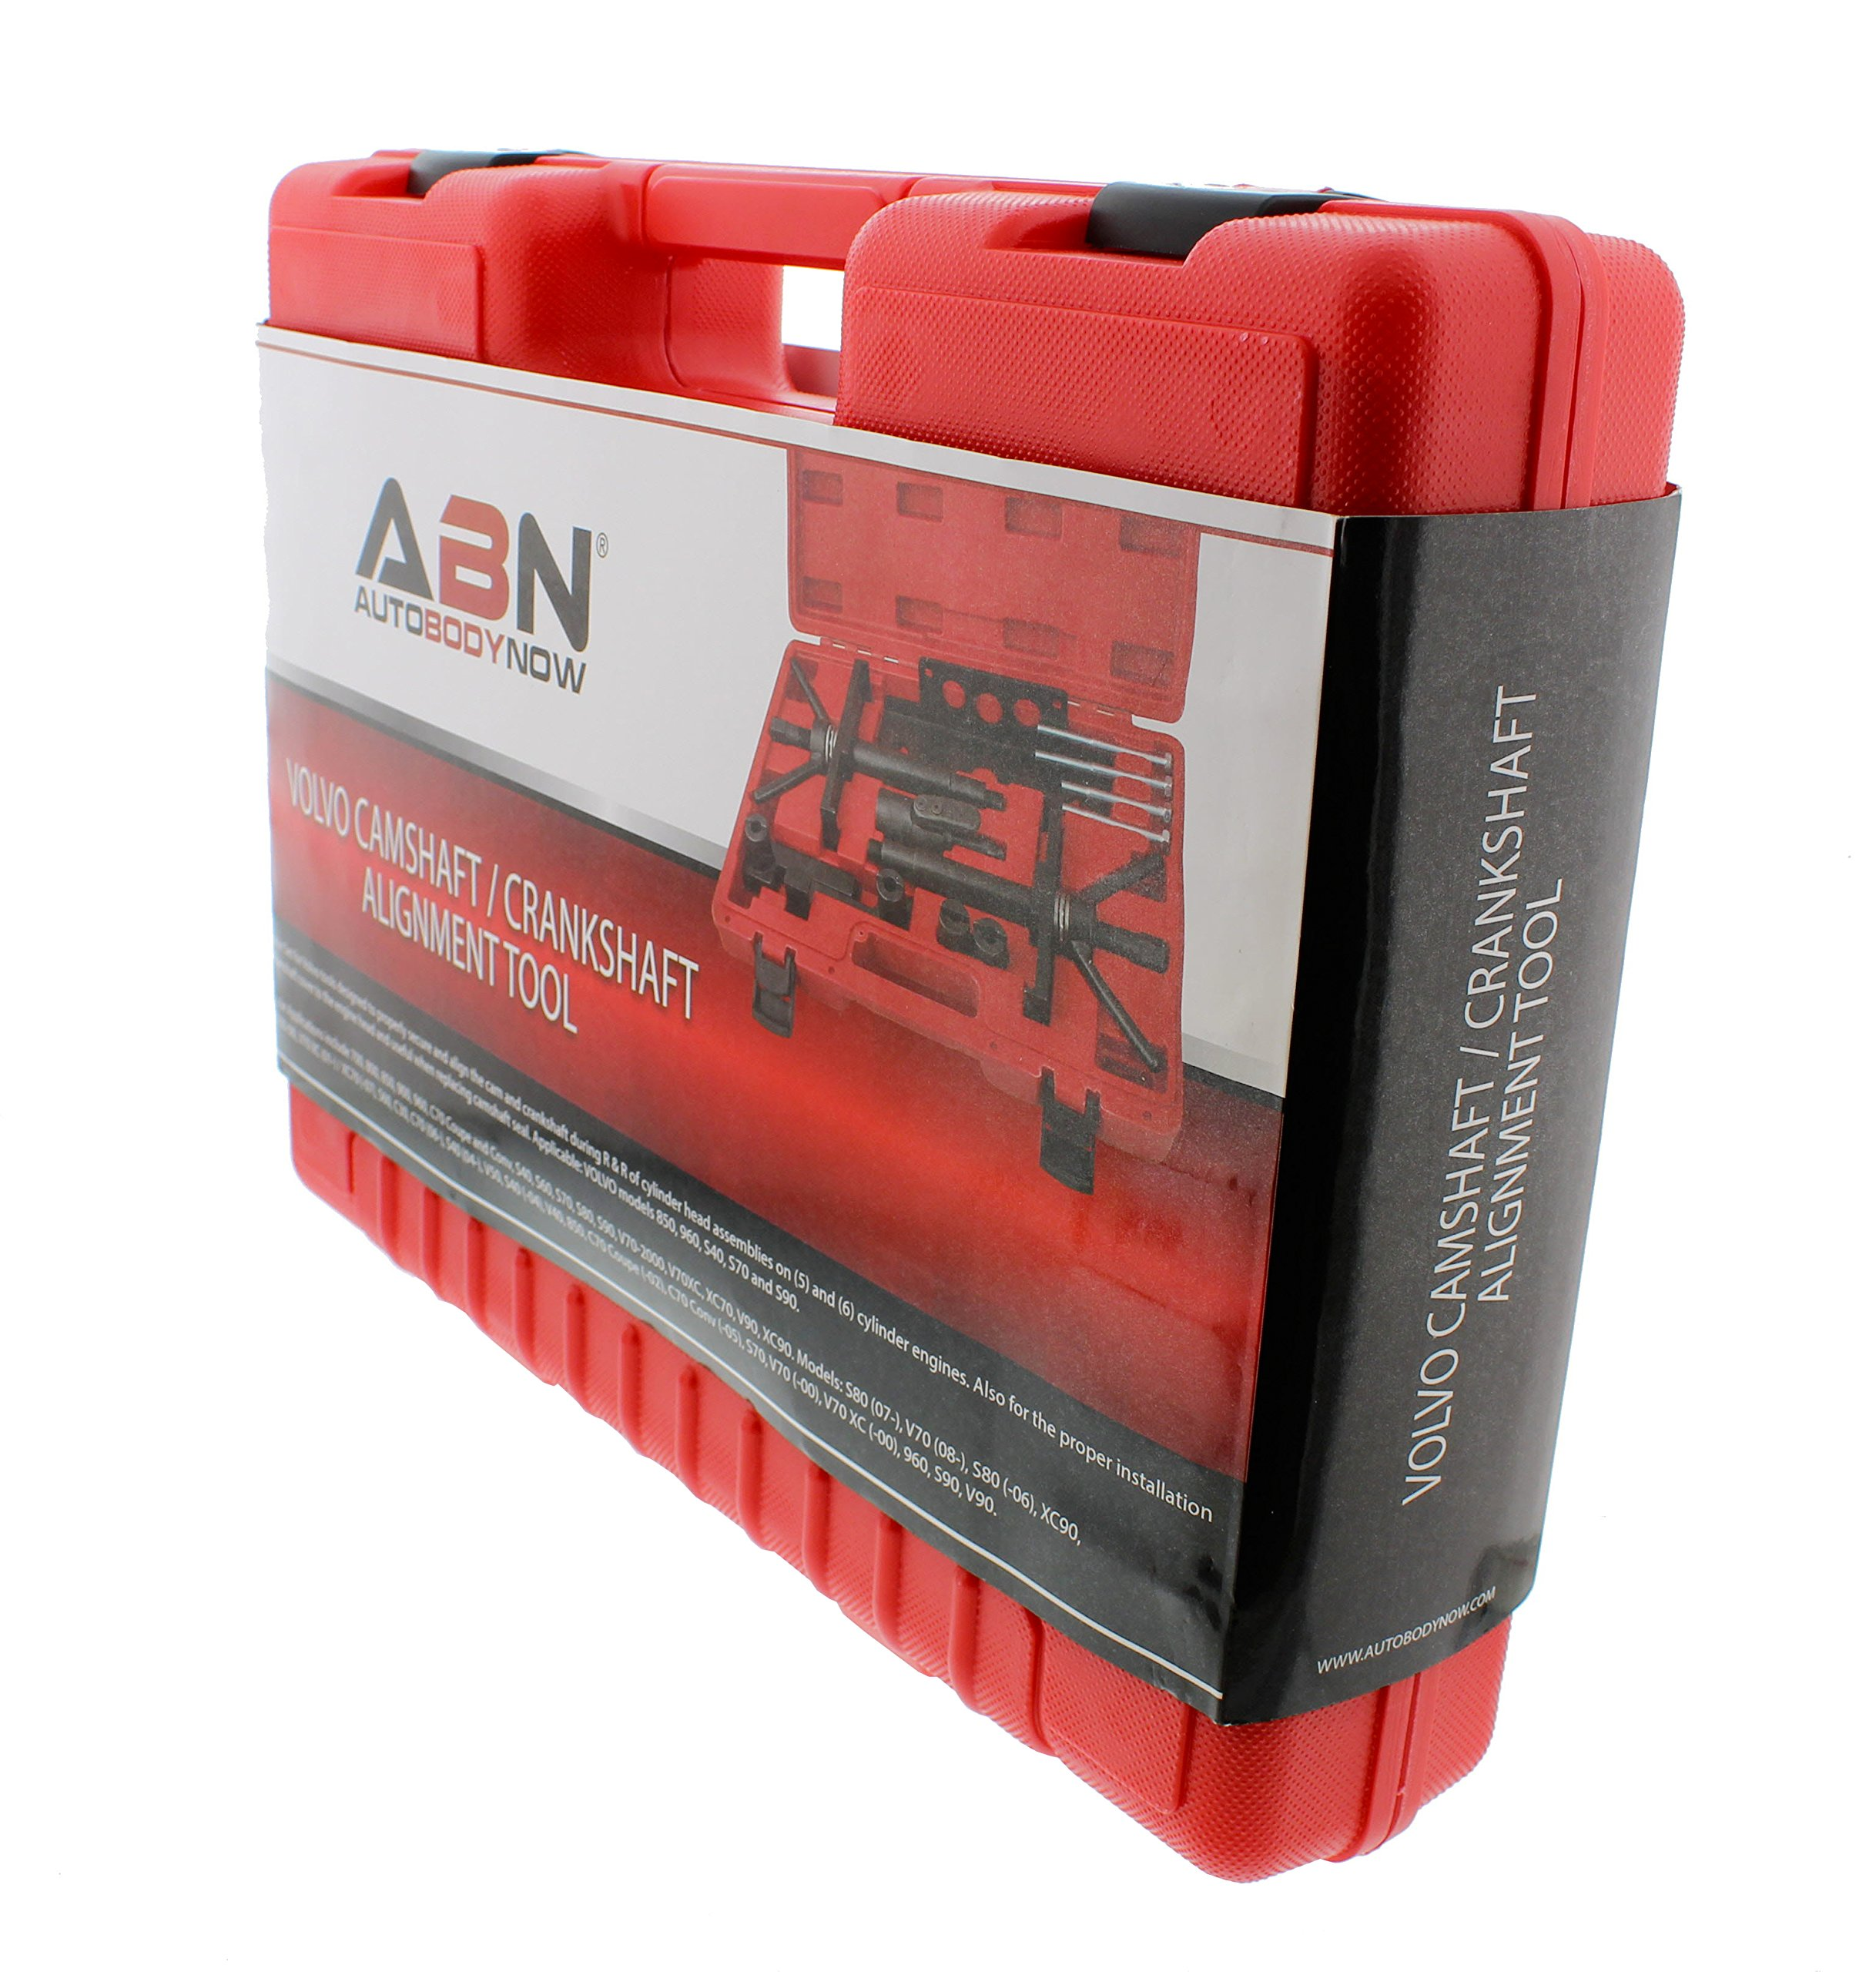 ABN Volvo Camshaft Crankshaft Engine Alignment Tool Timing Set Kit for Volvo 850, 960, S40, S70, S90 by ABN (Image #7)